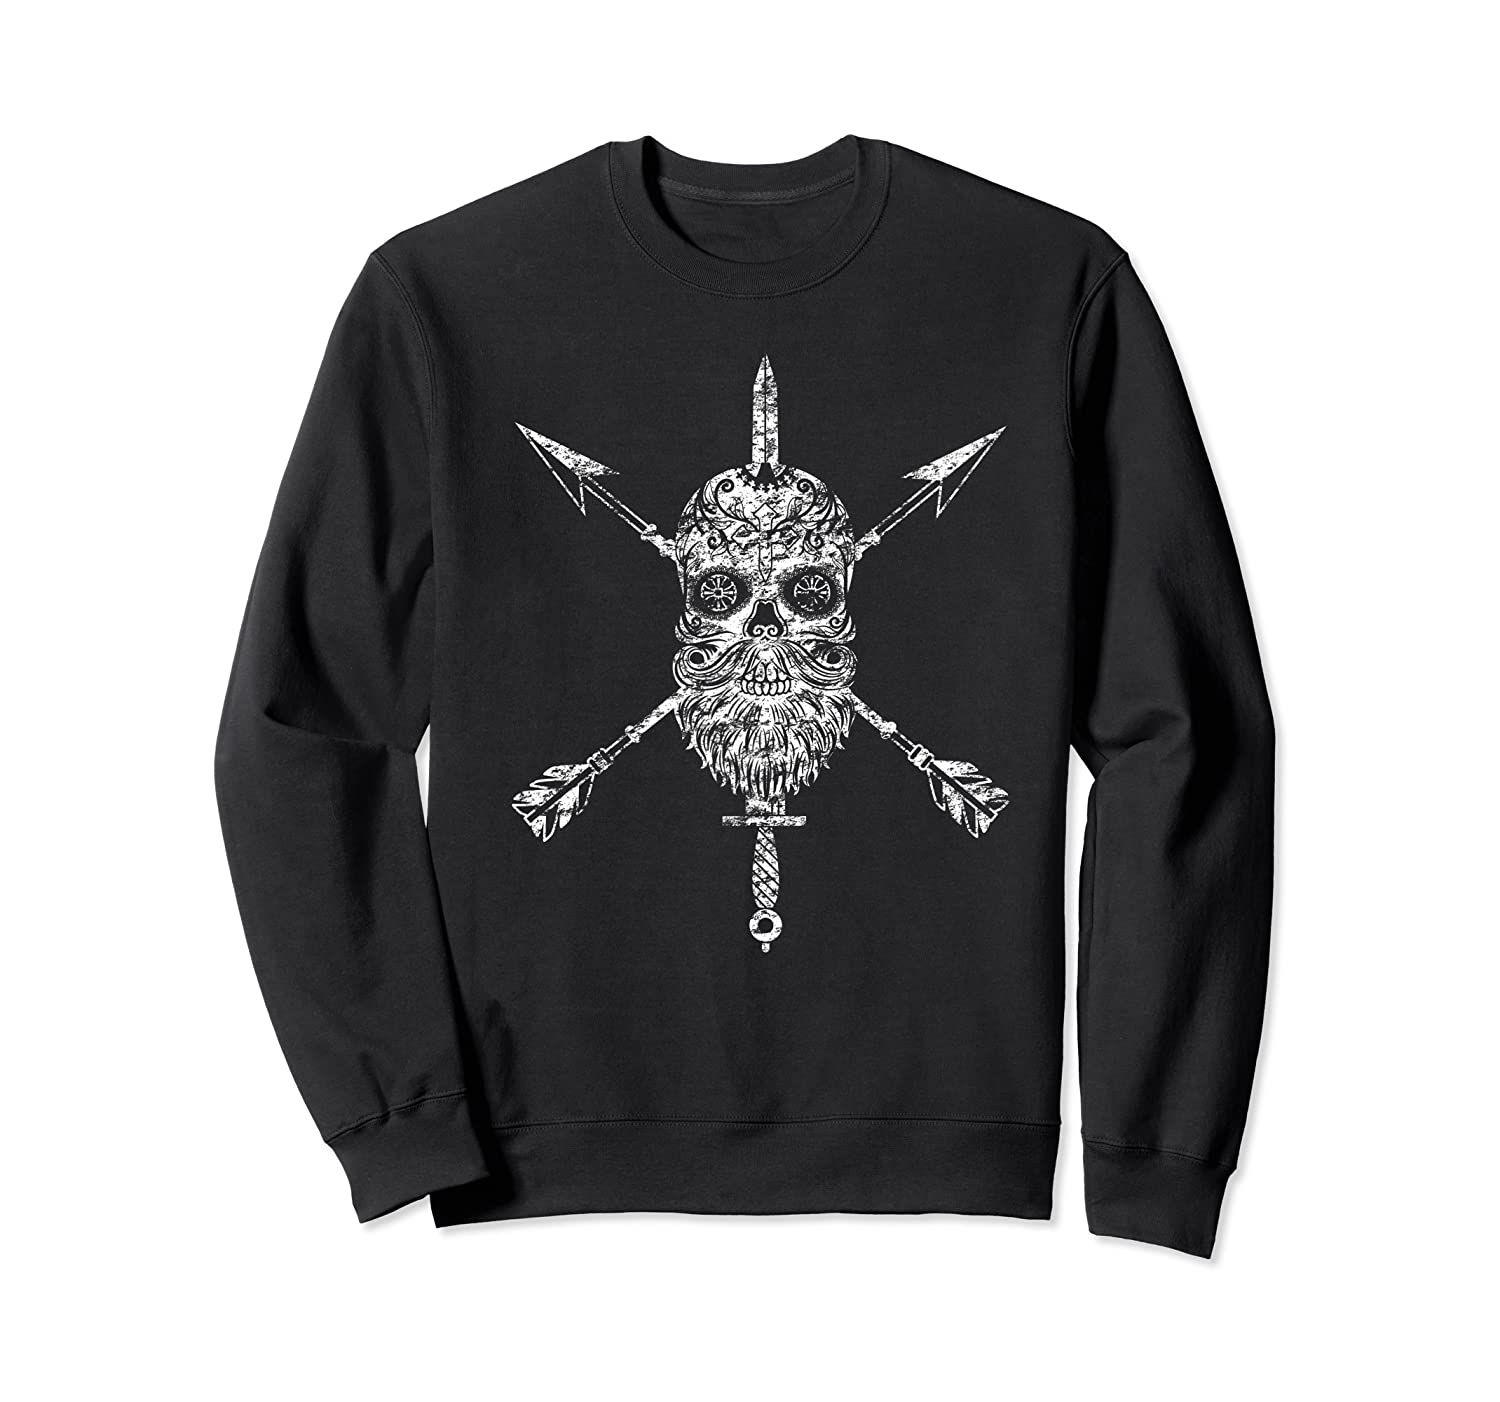 Vintage Sugar Skull Special Forces Military Tribute Design Shirts Crewneck Sweater